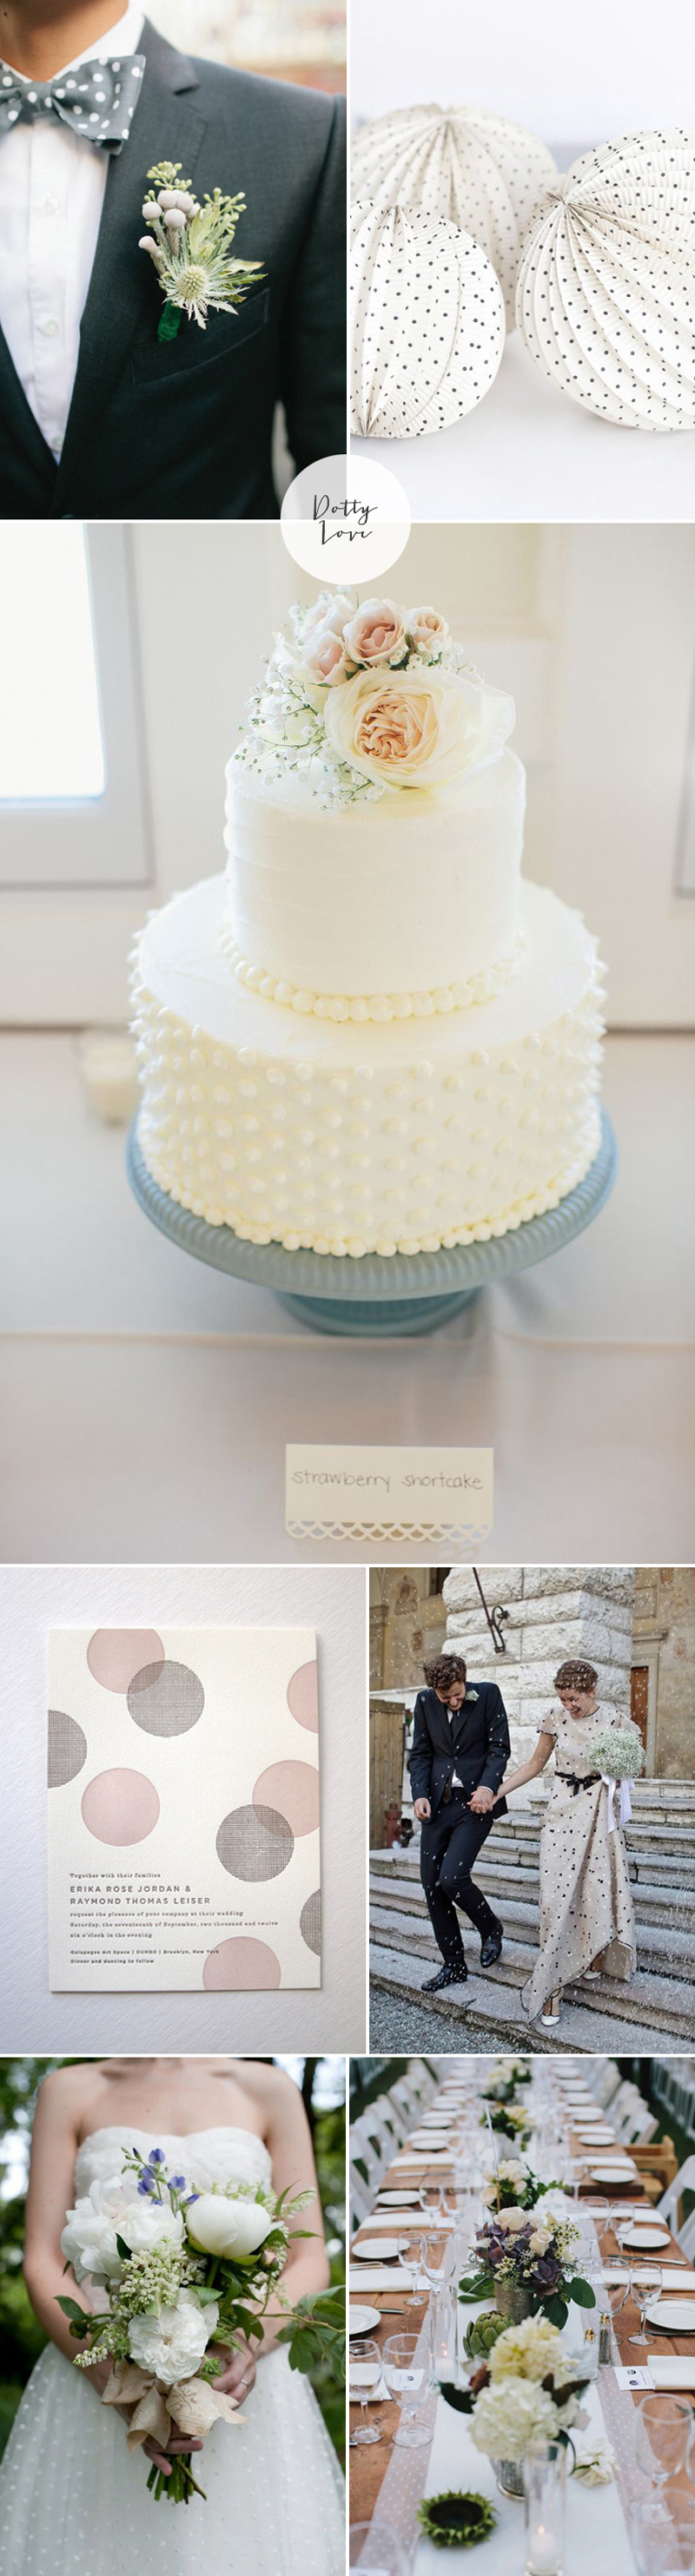 wedding-trends-2015-coco-wedding-venues-f